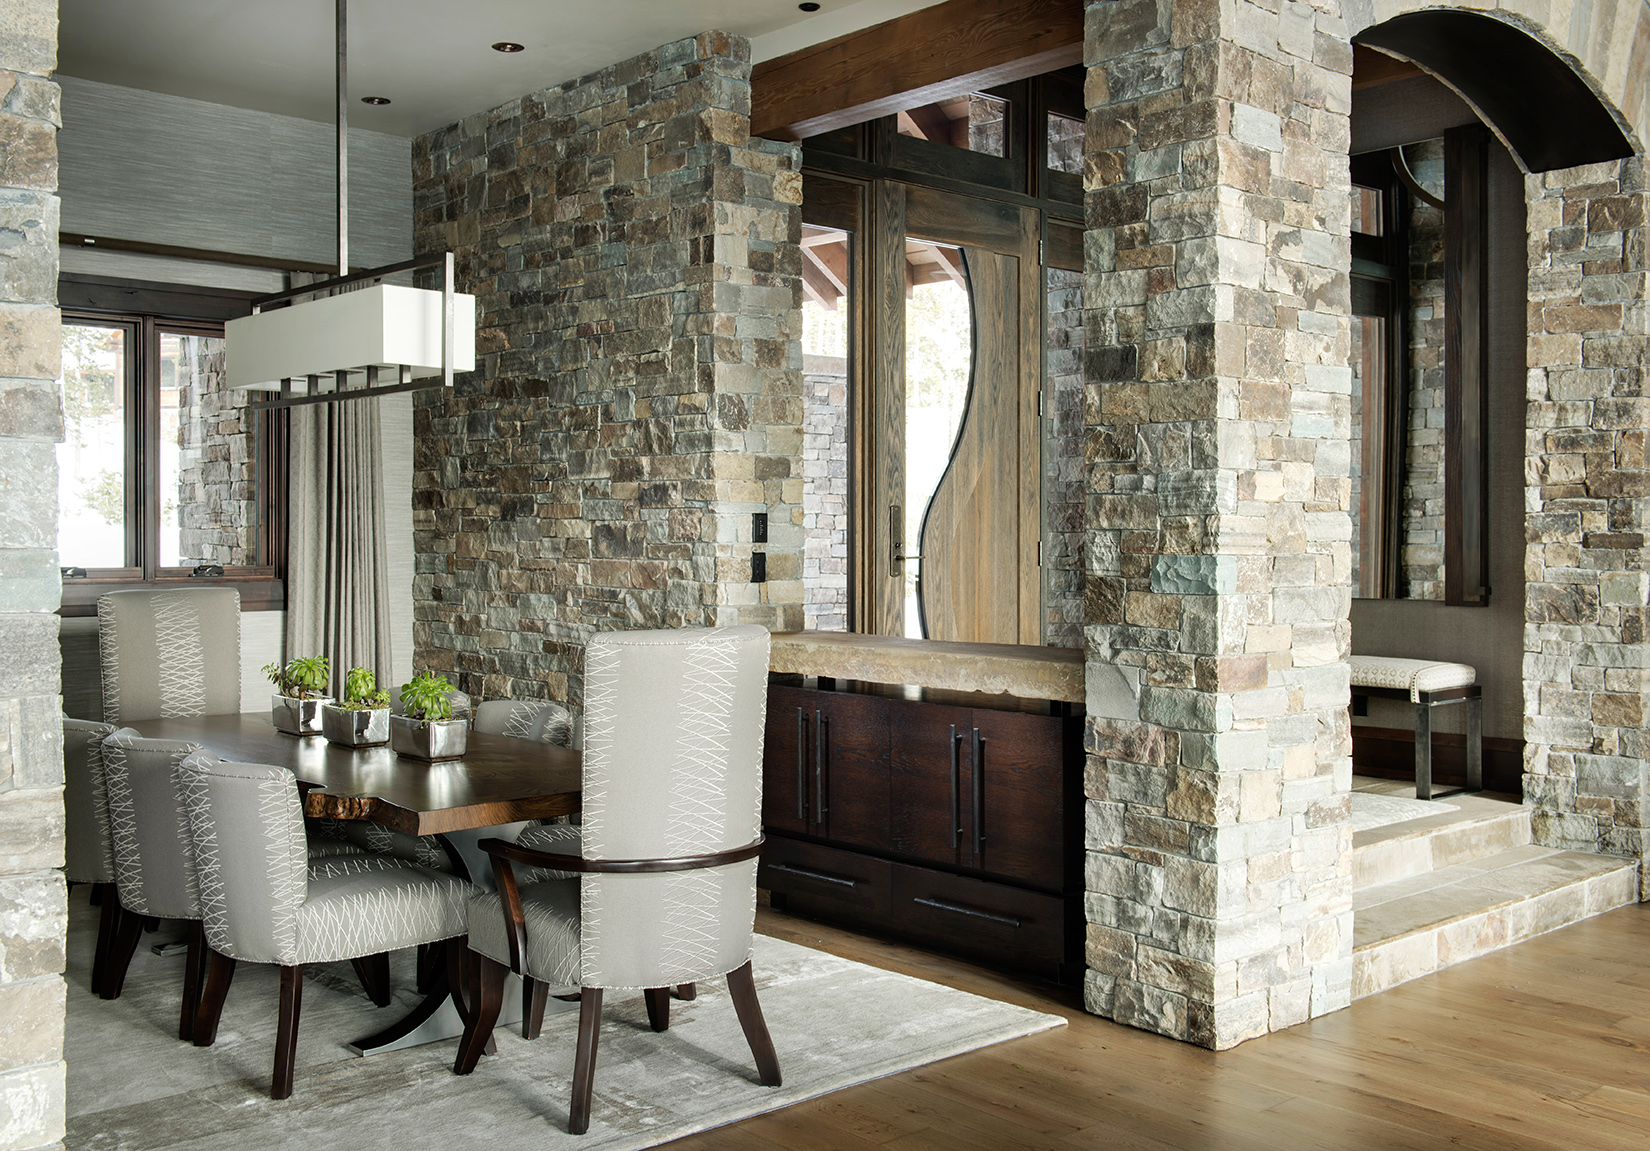 The entry and dining area flow into each other perfectly.  The stone work is second to none!